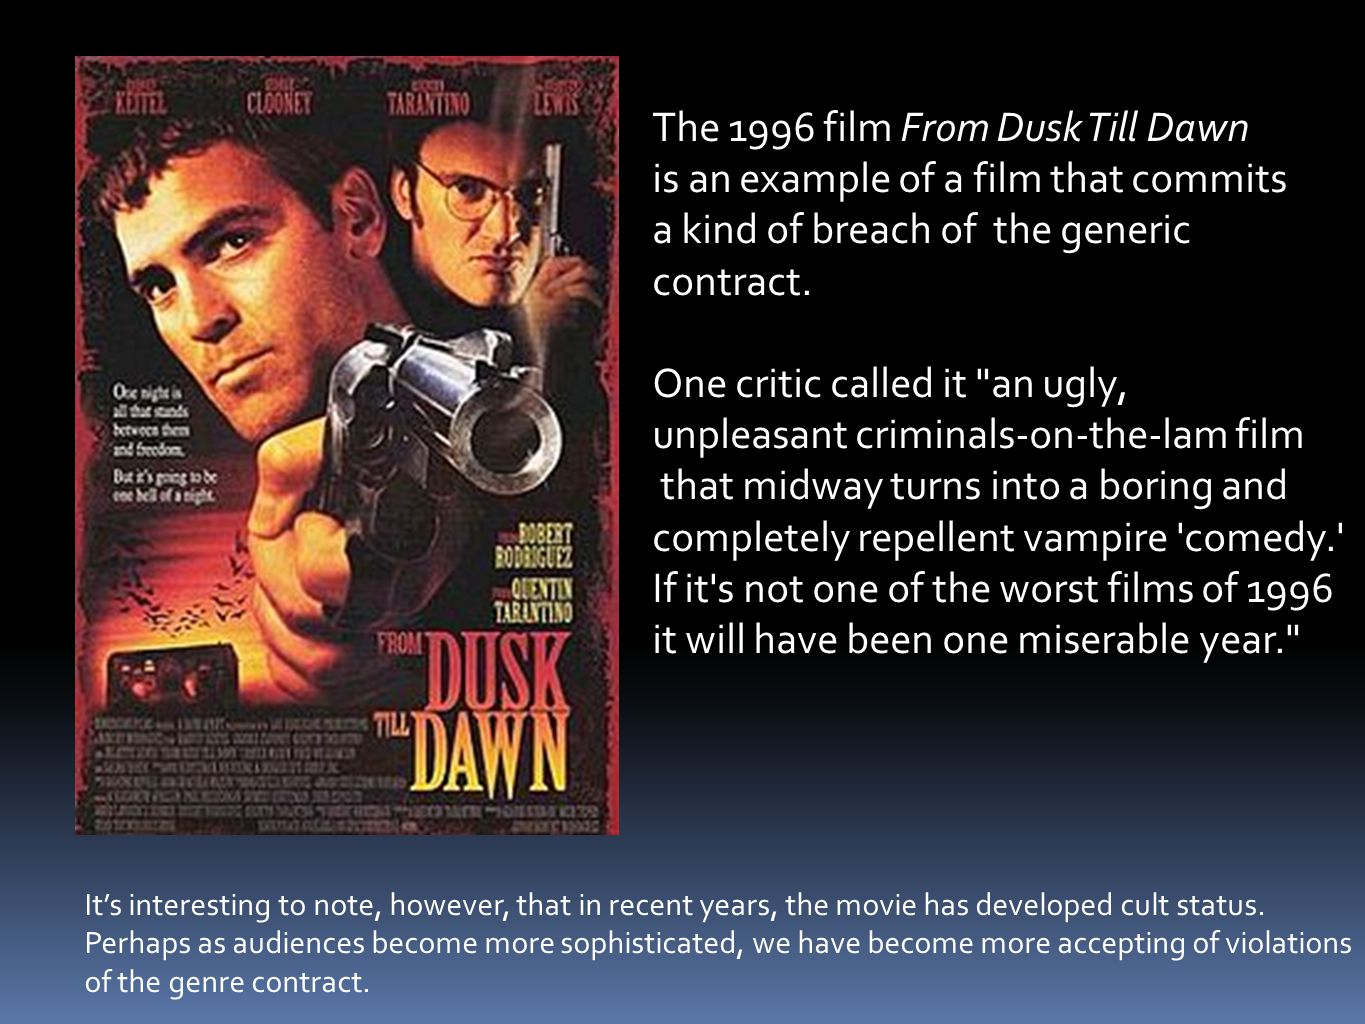 The 1996 film From Dusk Till Dawn is an example of a film that commits a kind of breach of the generic contract.